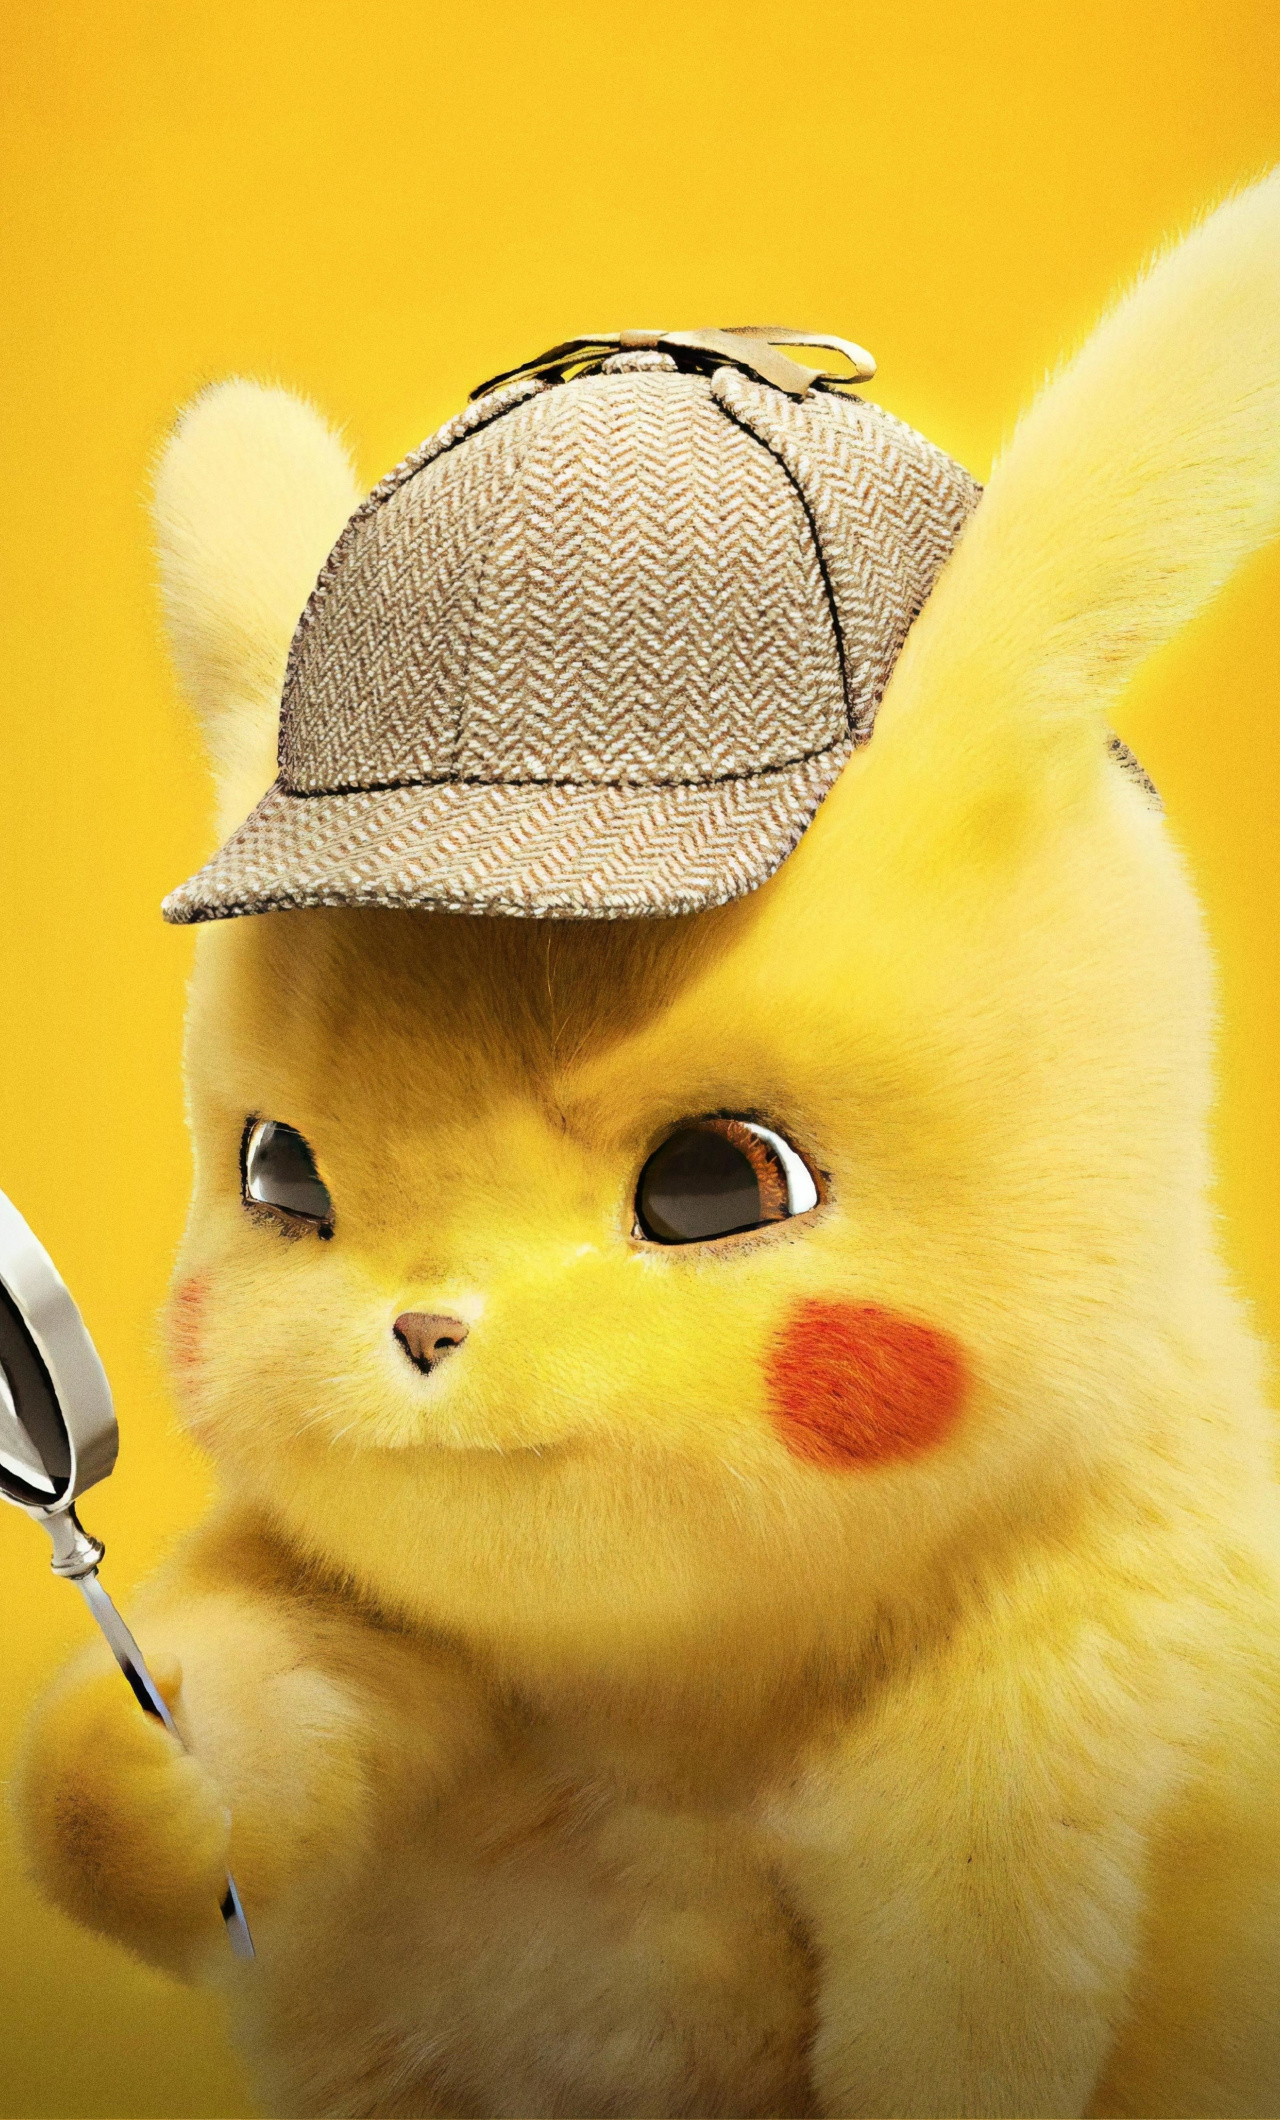 detective pikachu wallpaper for mobile